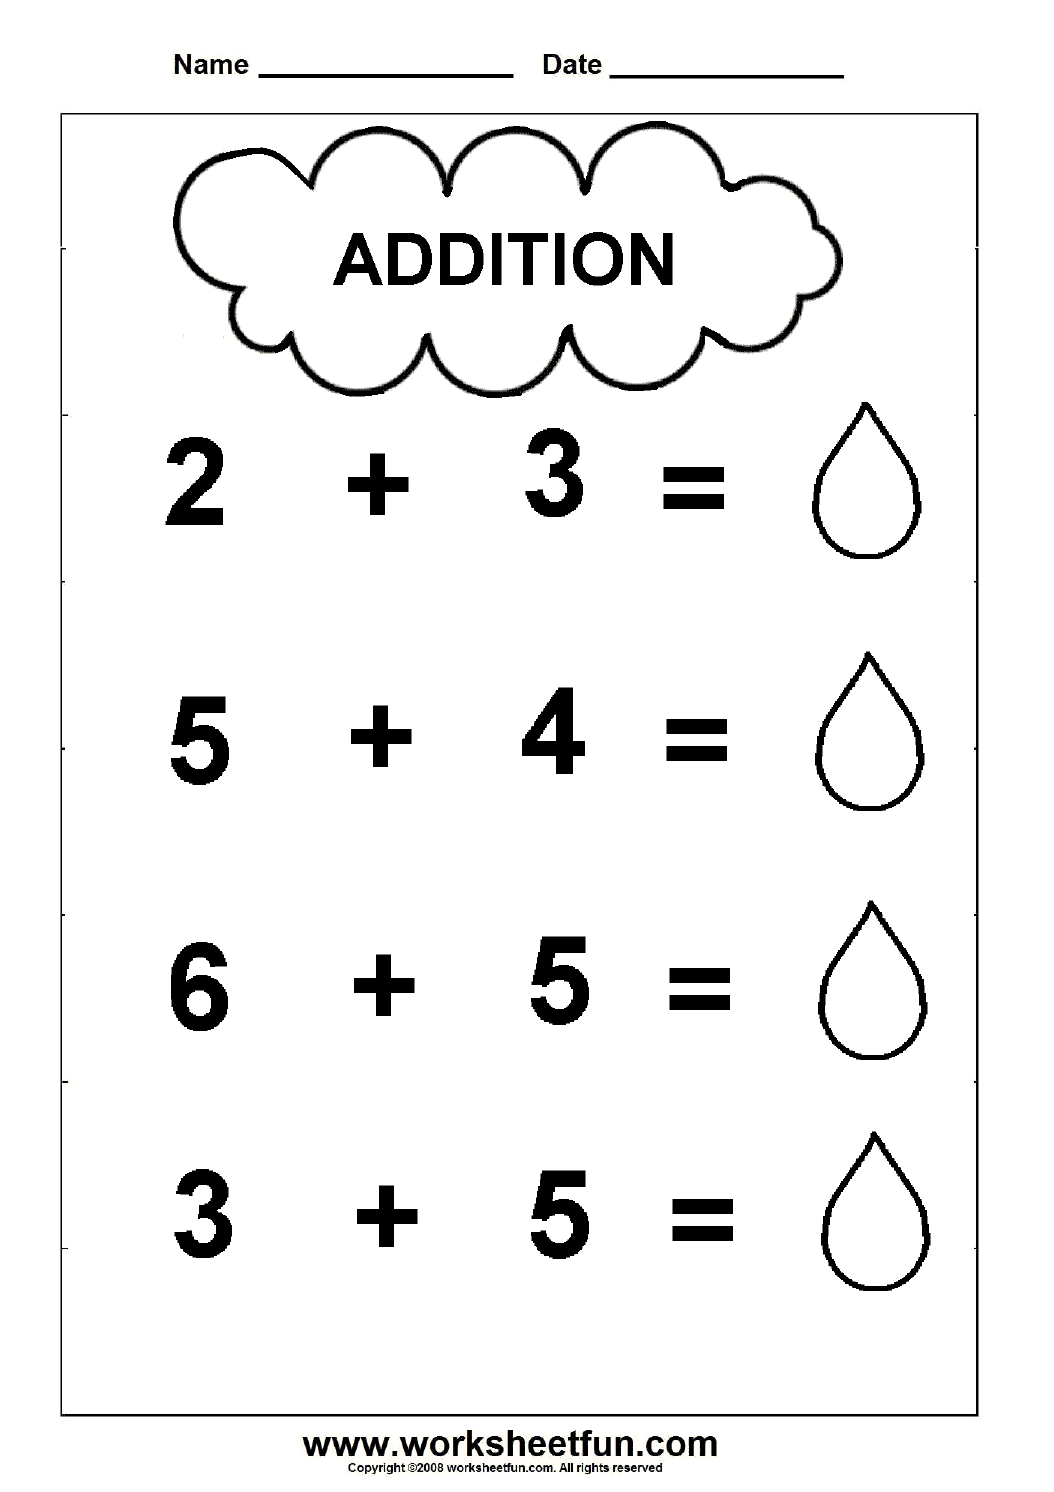 hight resolution of Addition Worksheet Kindergarten - Kindergarten